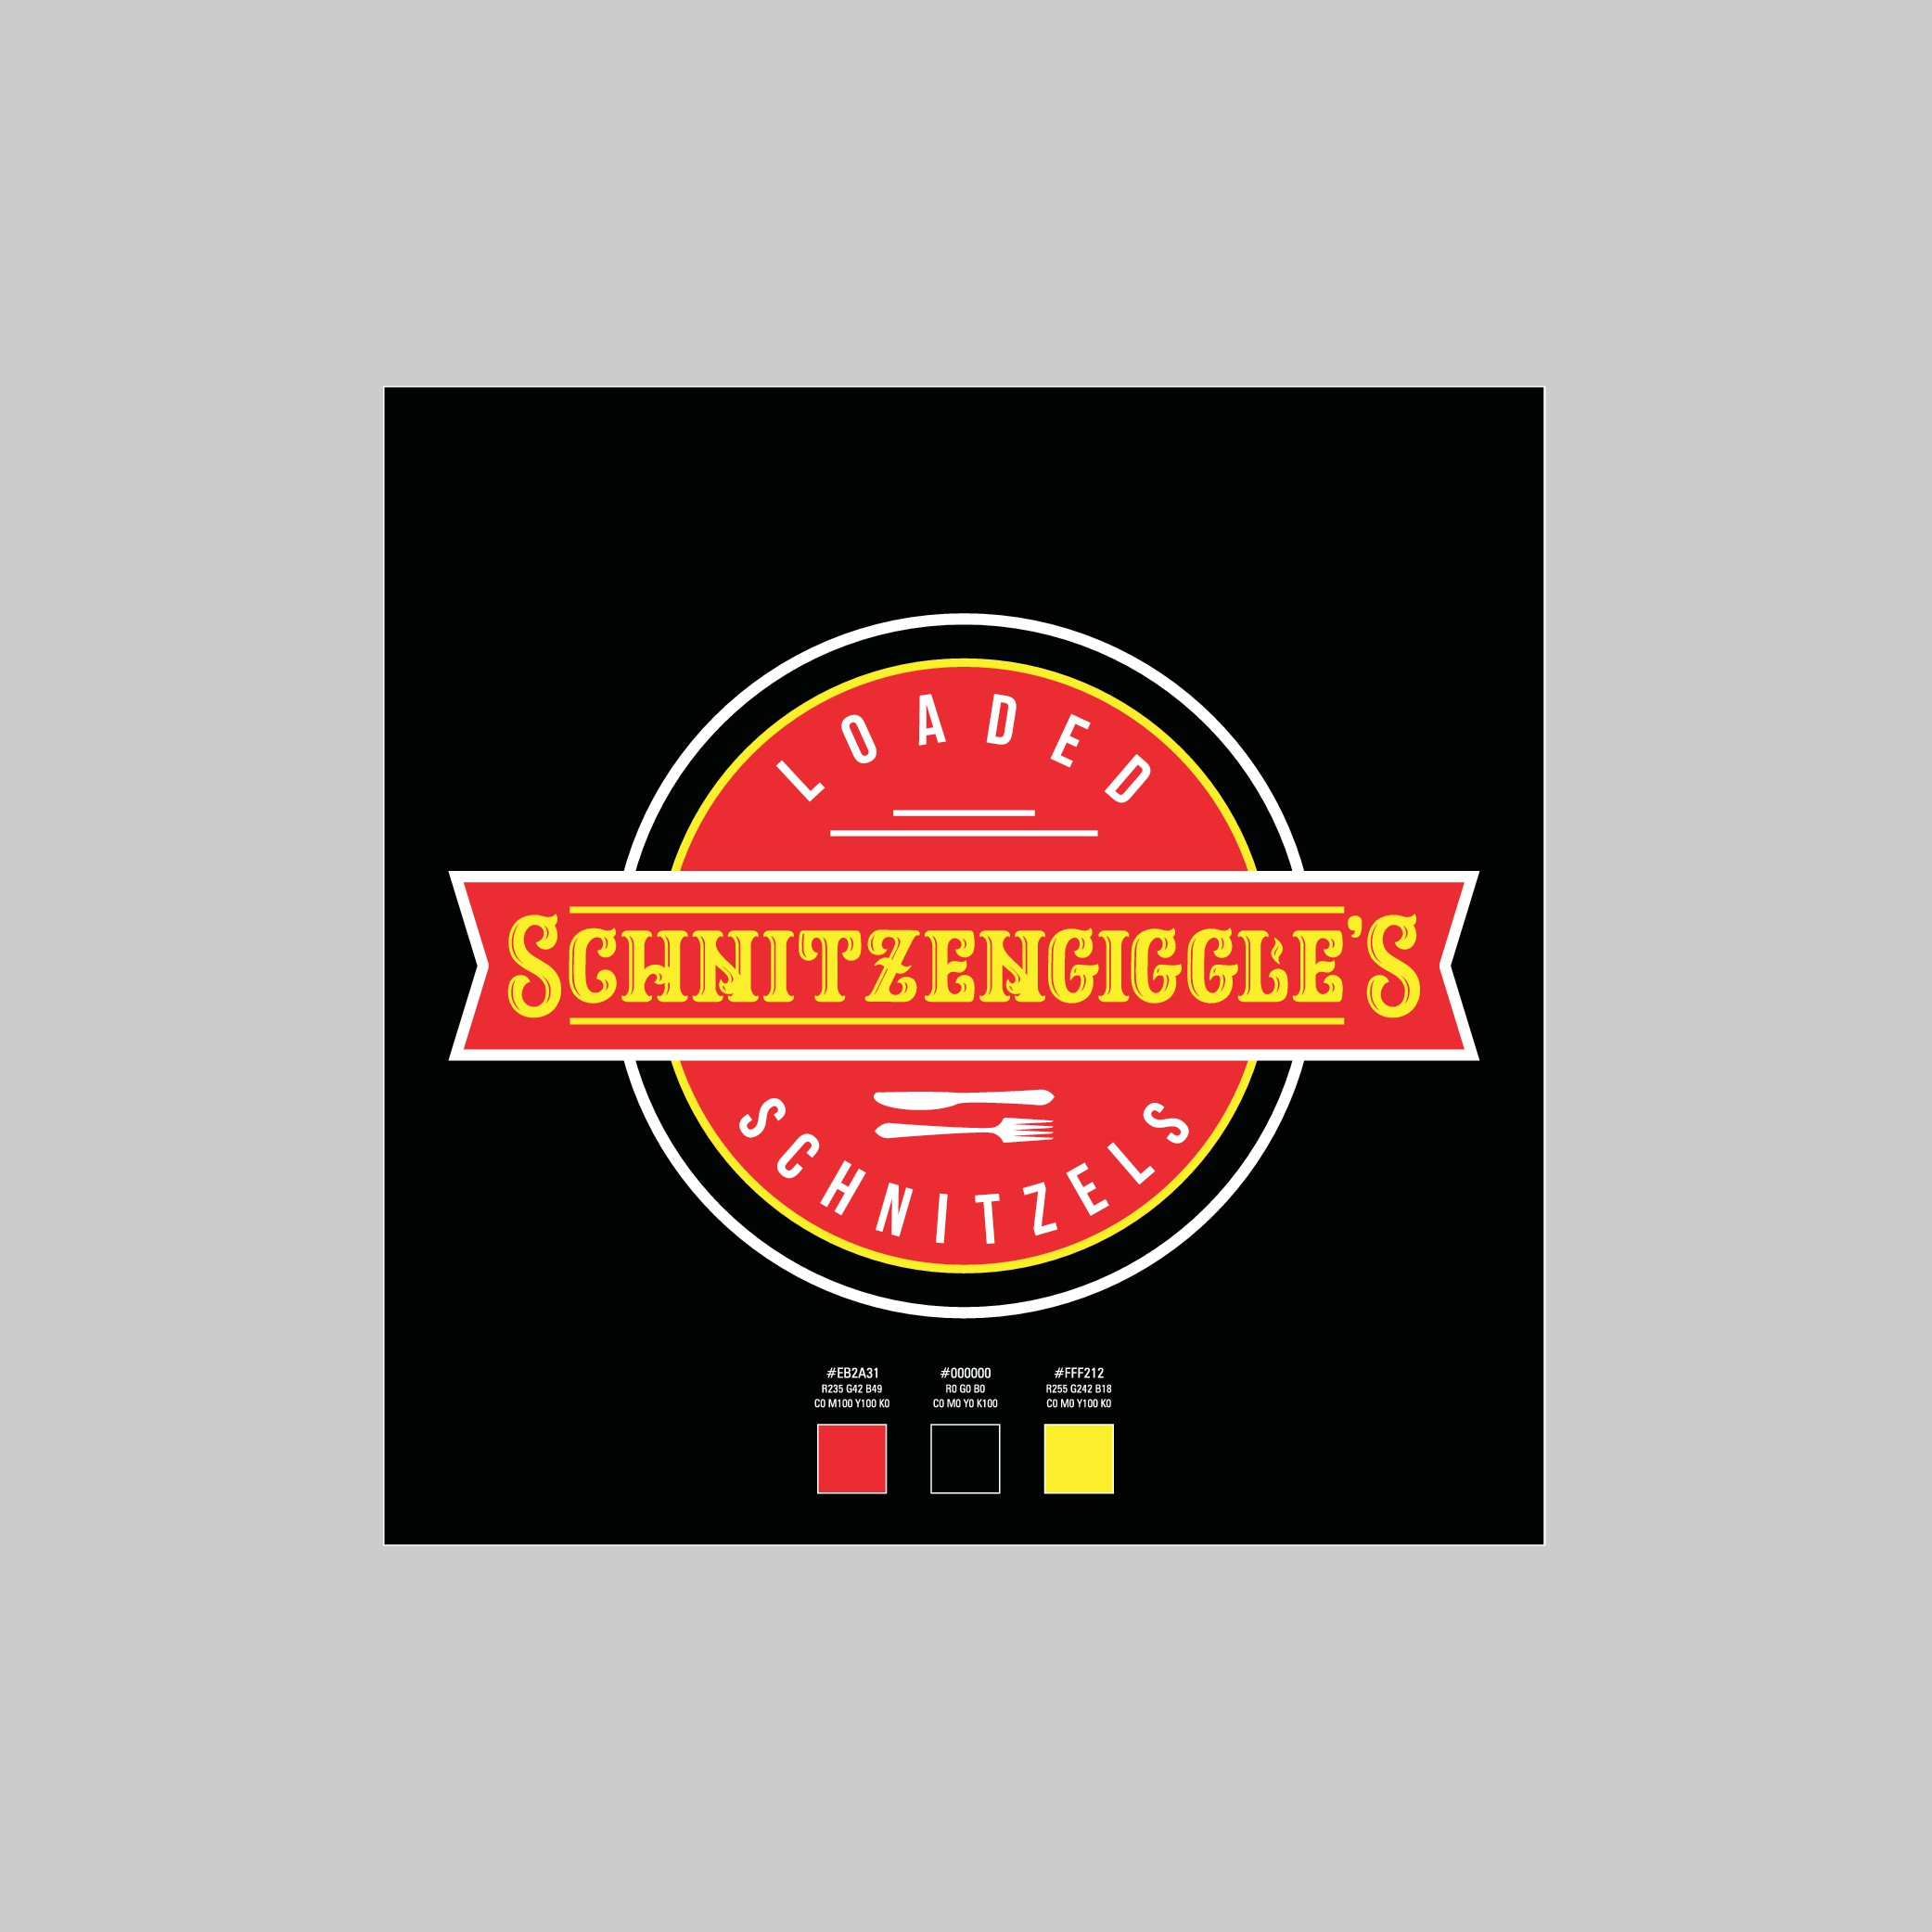 Logo for new virtual specilaity schniztel restaurant - Schnitzengiggle's